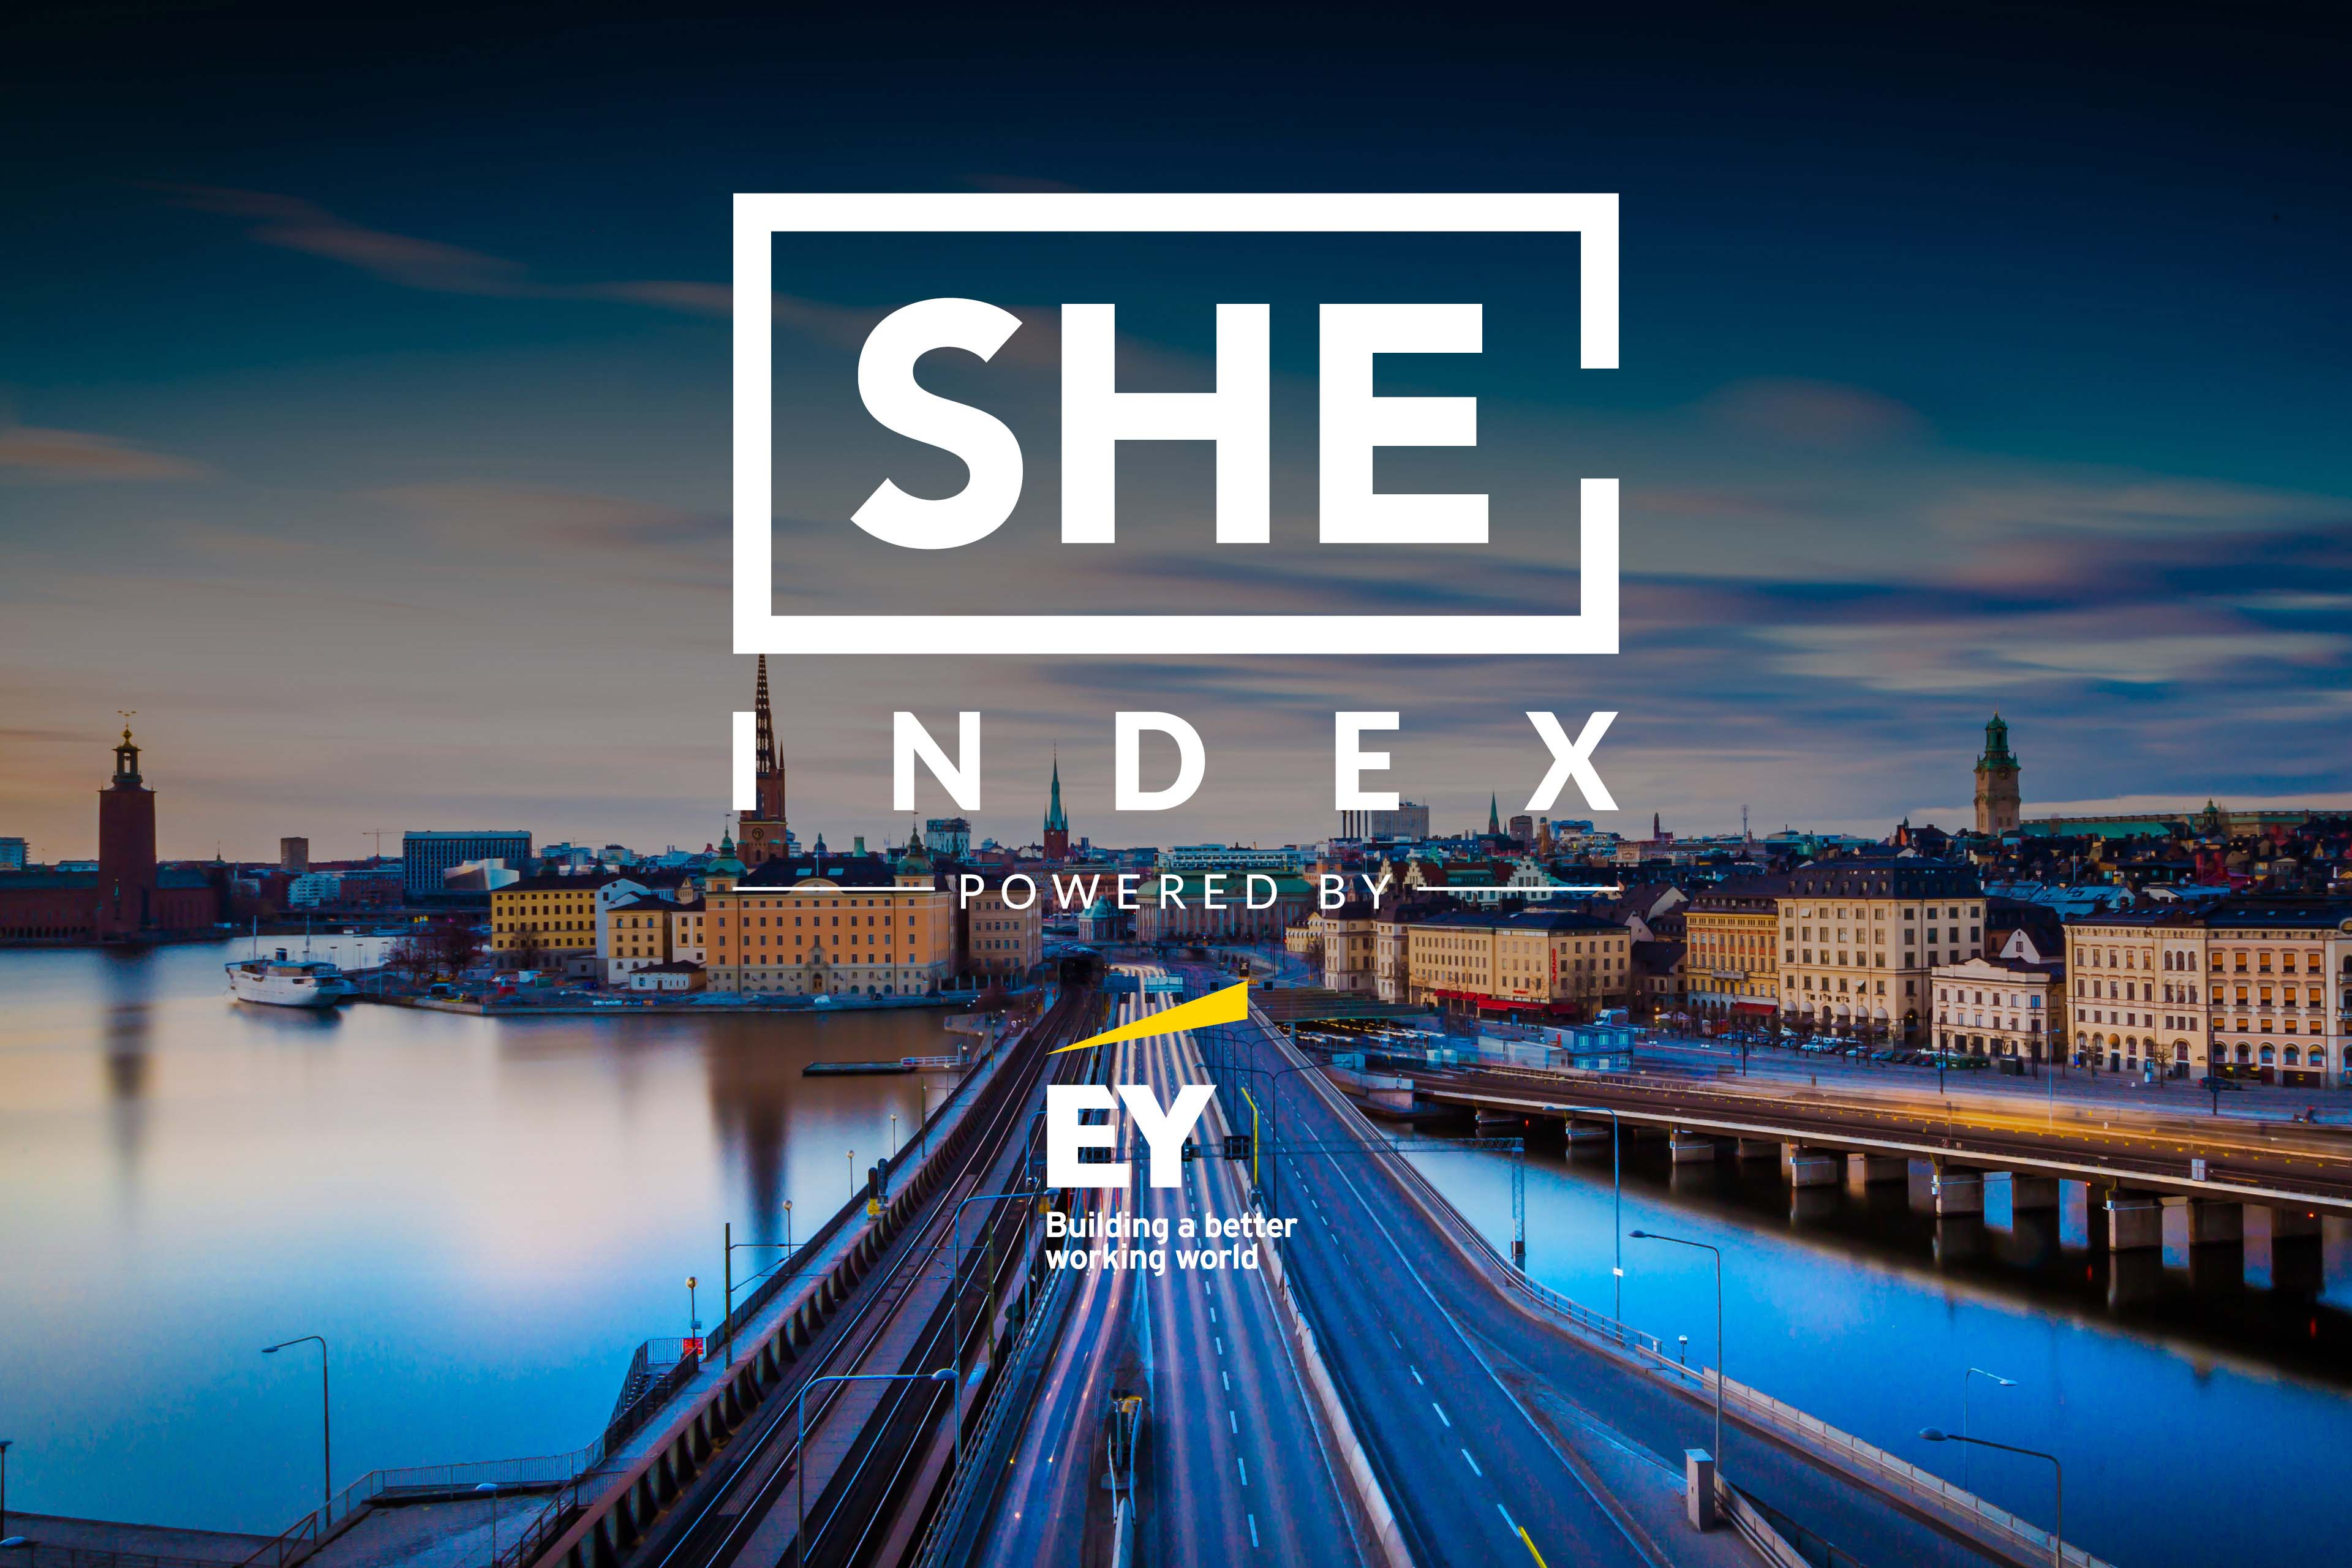 She Index powered by EY